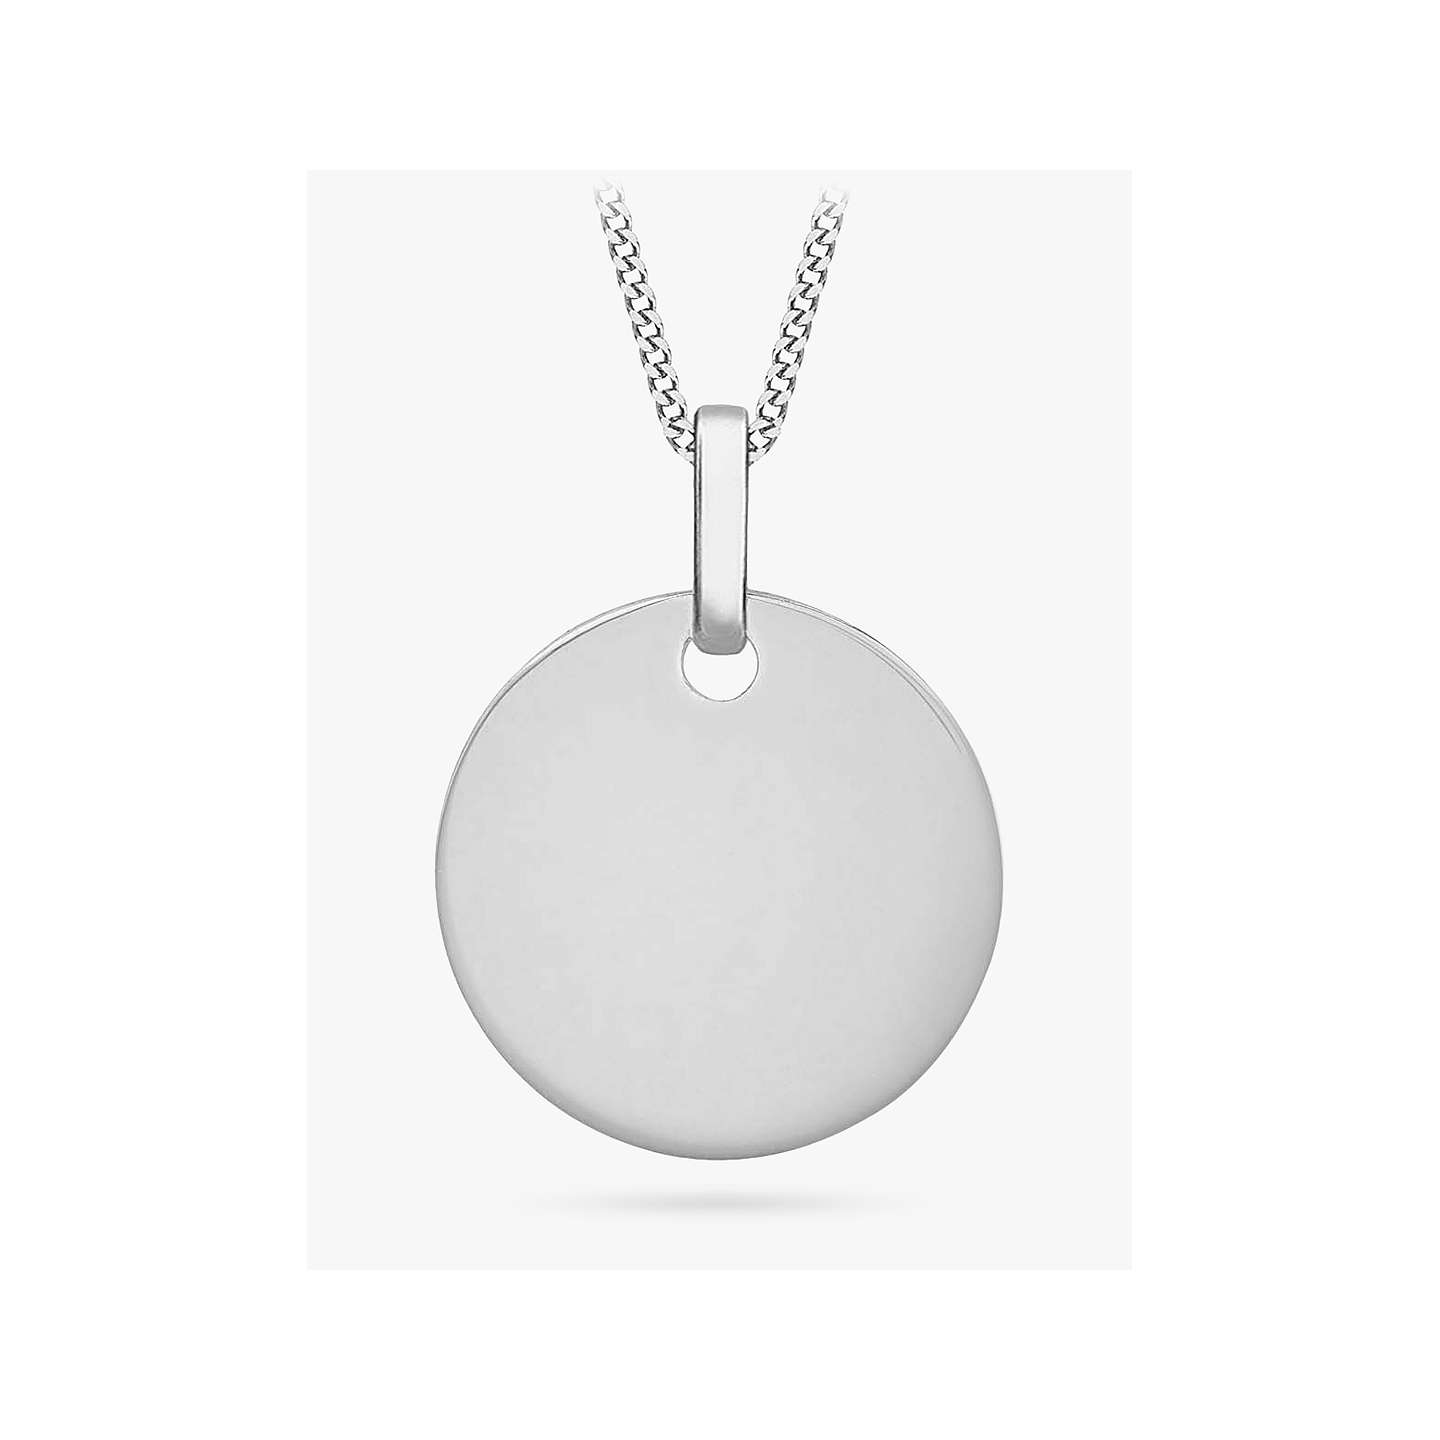 Ibb personalised 9ct gold disc initial pendant necklace at john lewis buyibb personalised 9ct gold disc initial pendant necklace white gold online at johnlewis mozeypictures Images